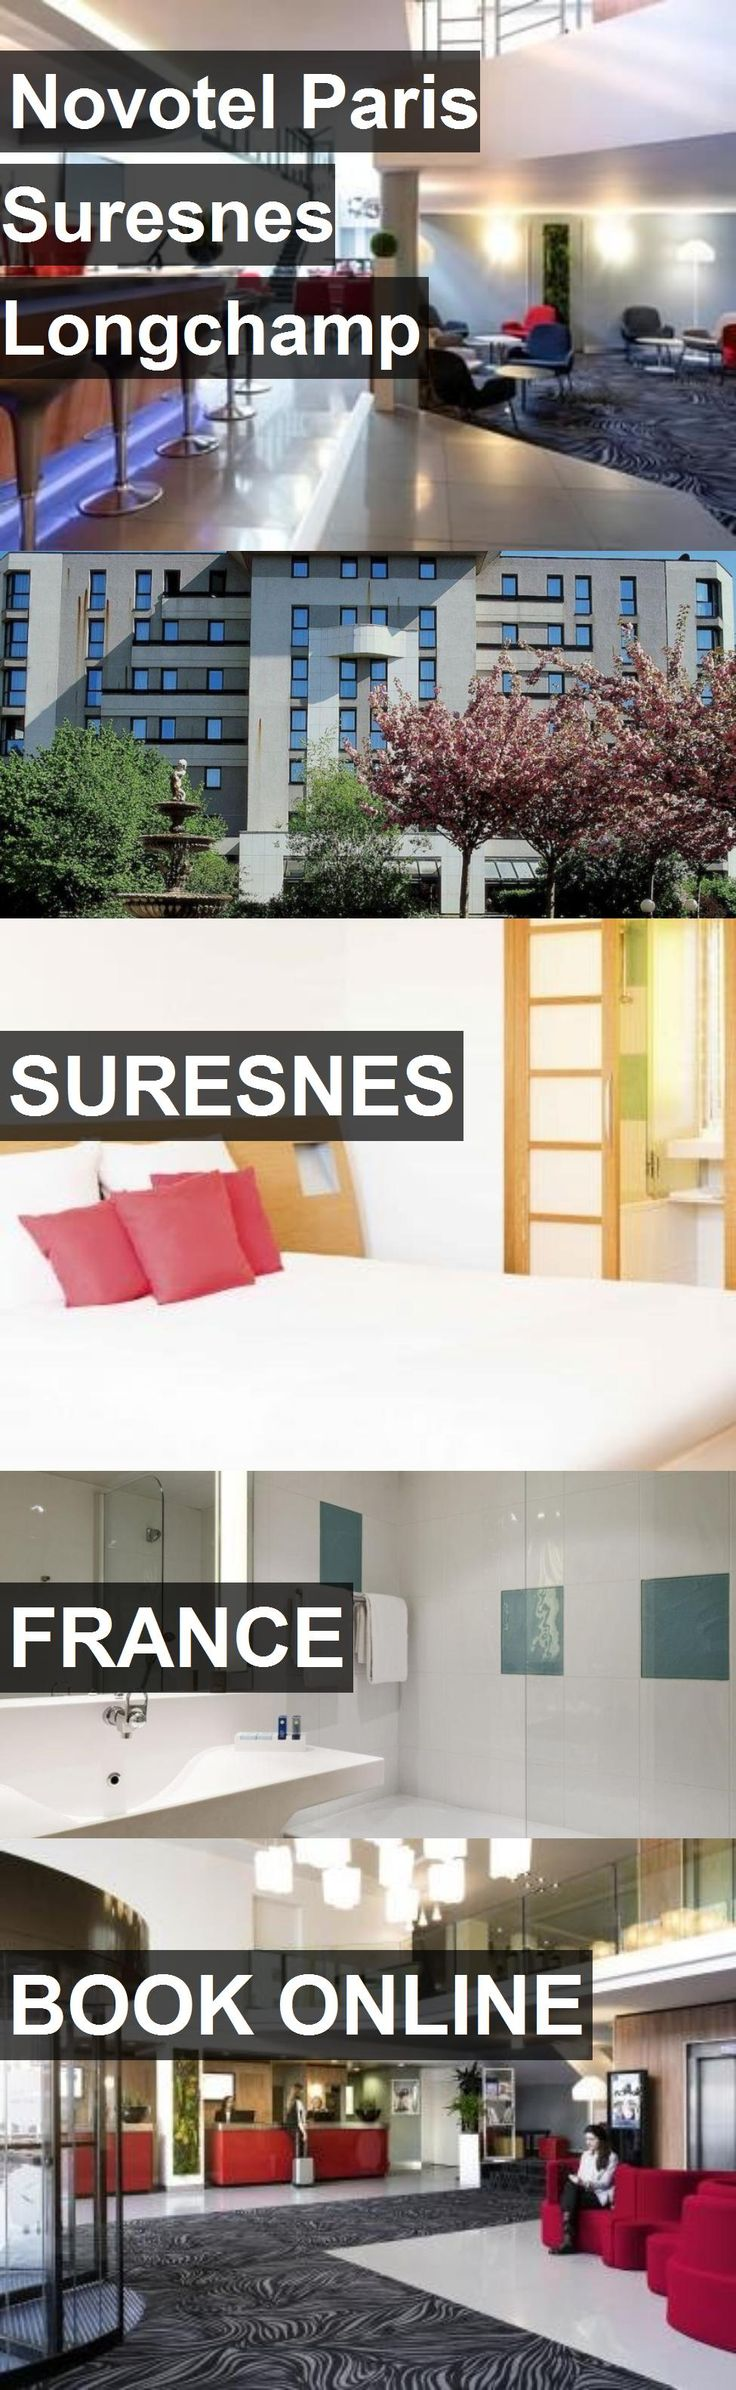 Hotel Novotel Paris Suresnes Longchamp in Suresnes, France. For more information, photos, reviews and best prices please follow the link. #France #Suresnes #travel #vacation #hotel